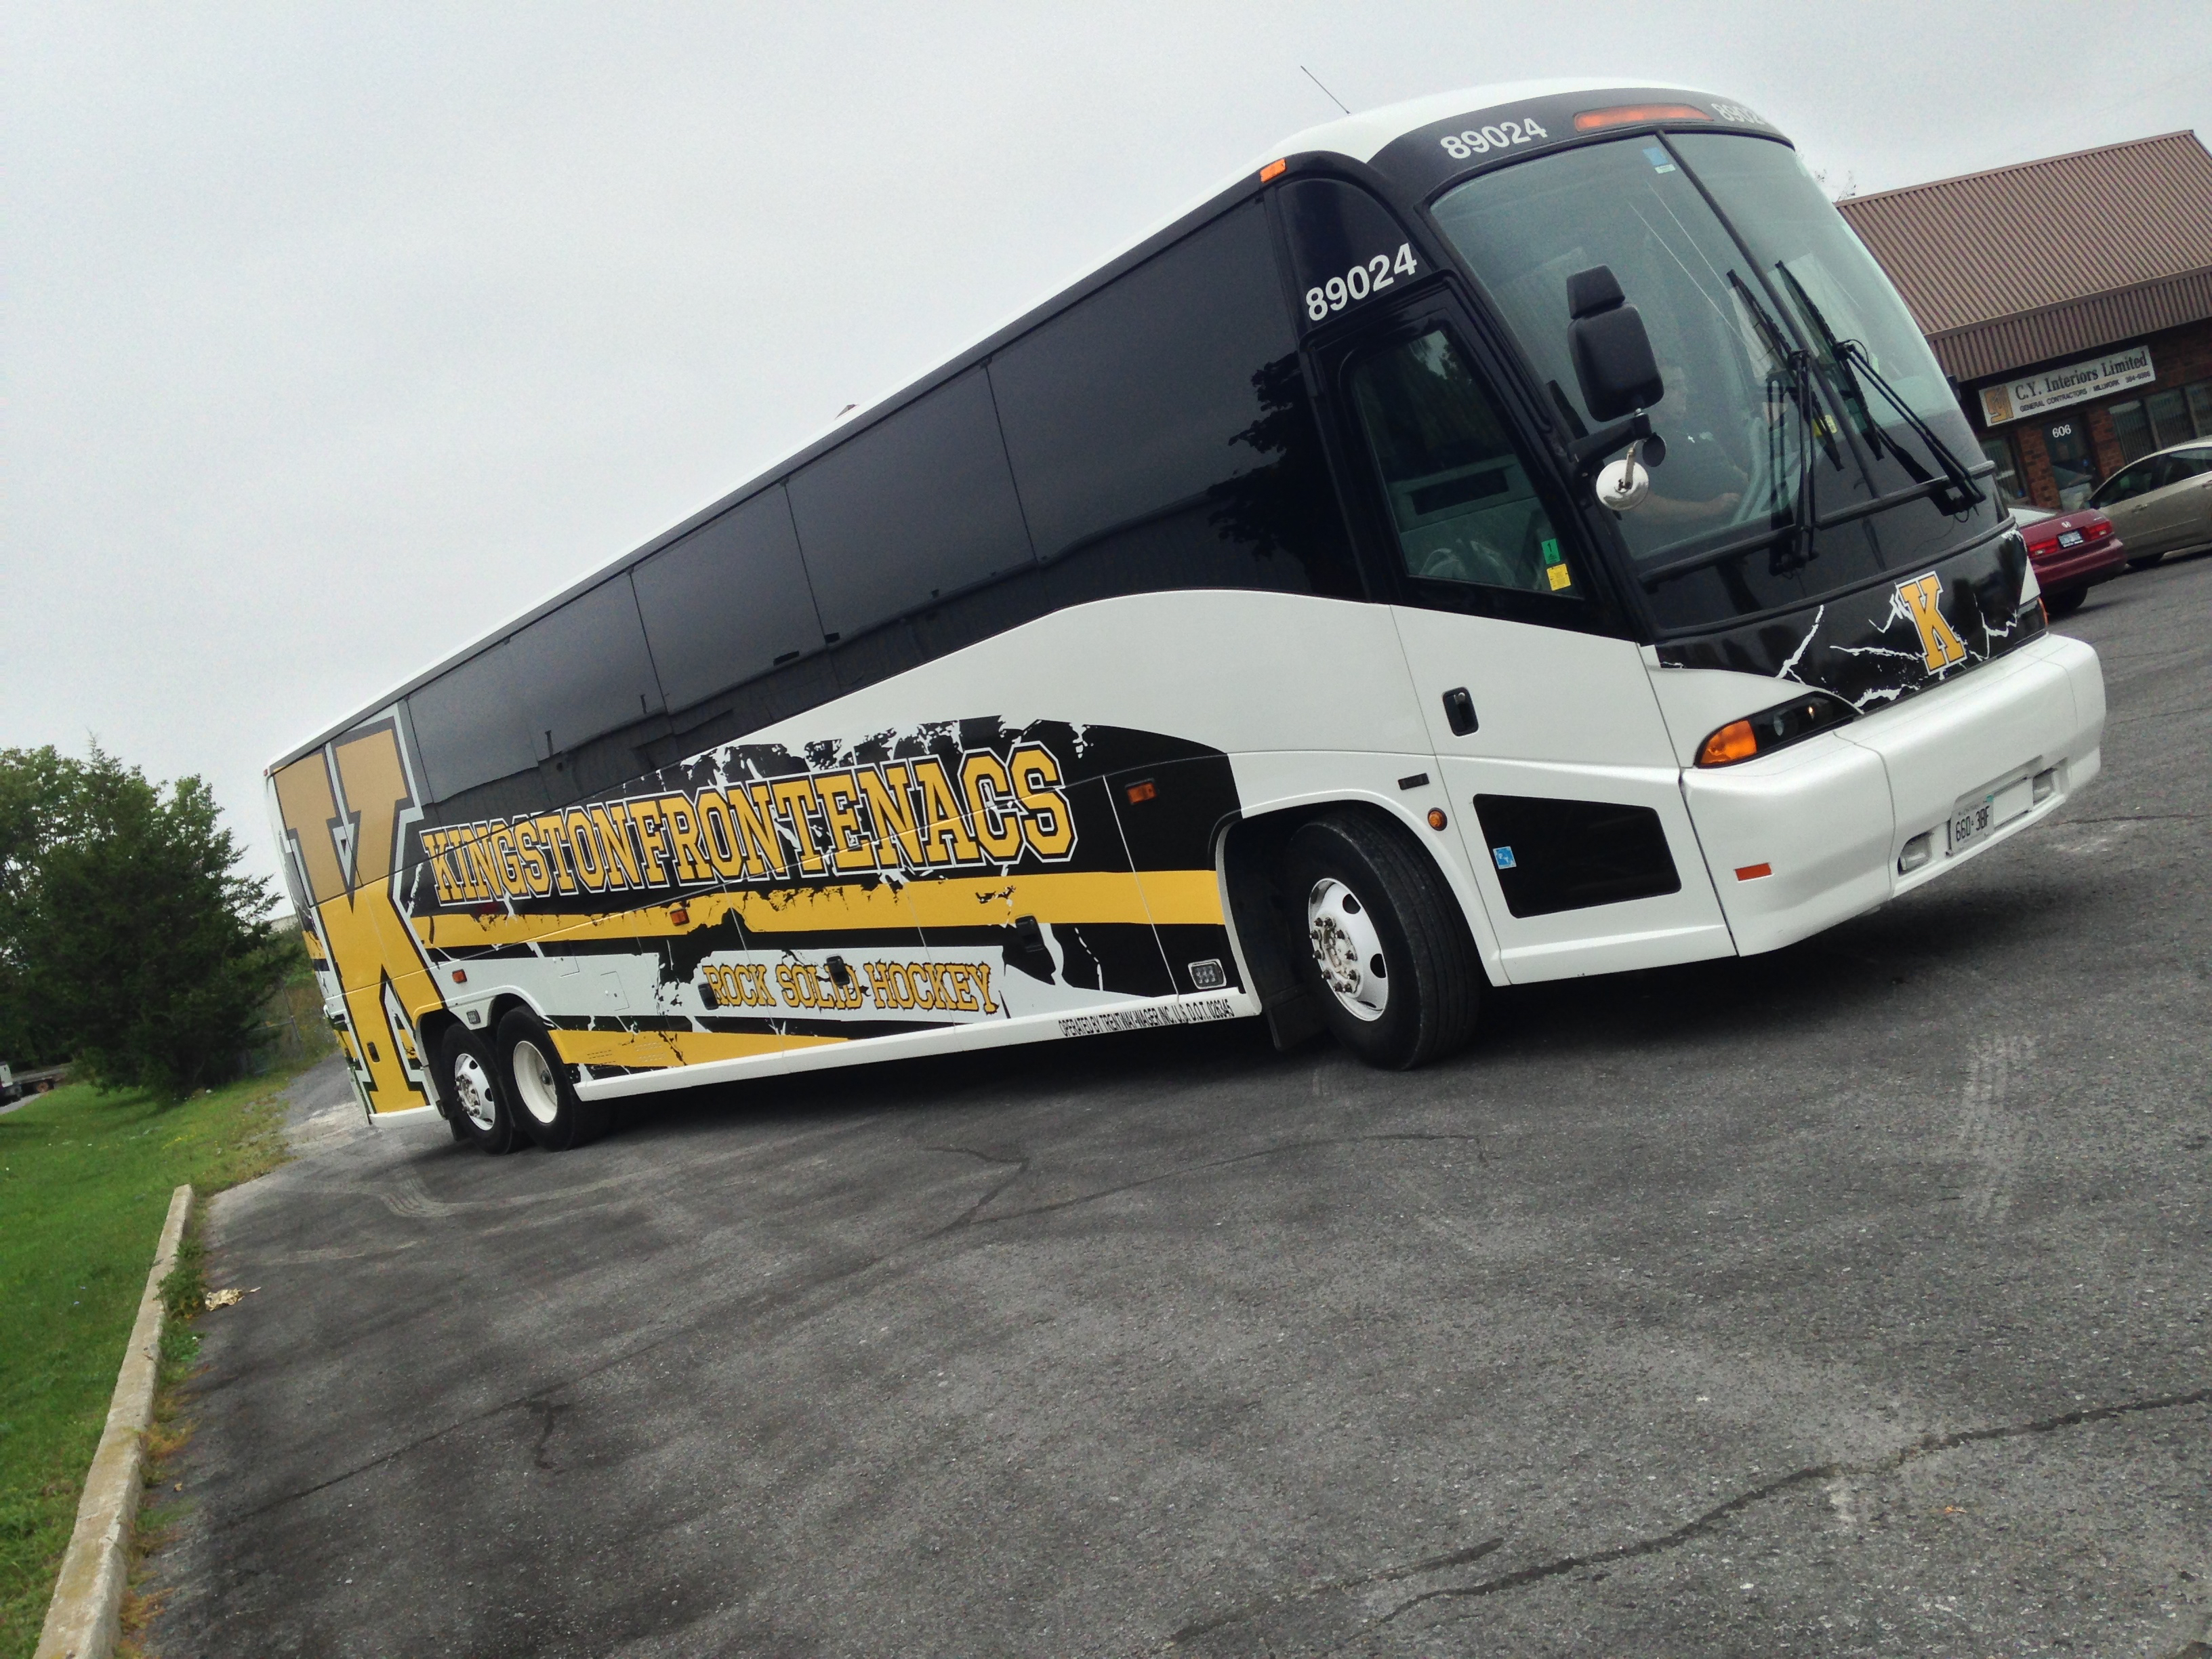 Kingston Frontenacs Coach Bus